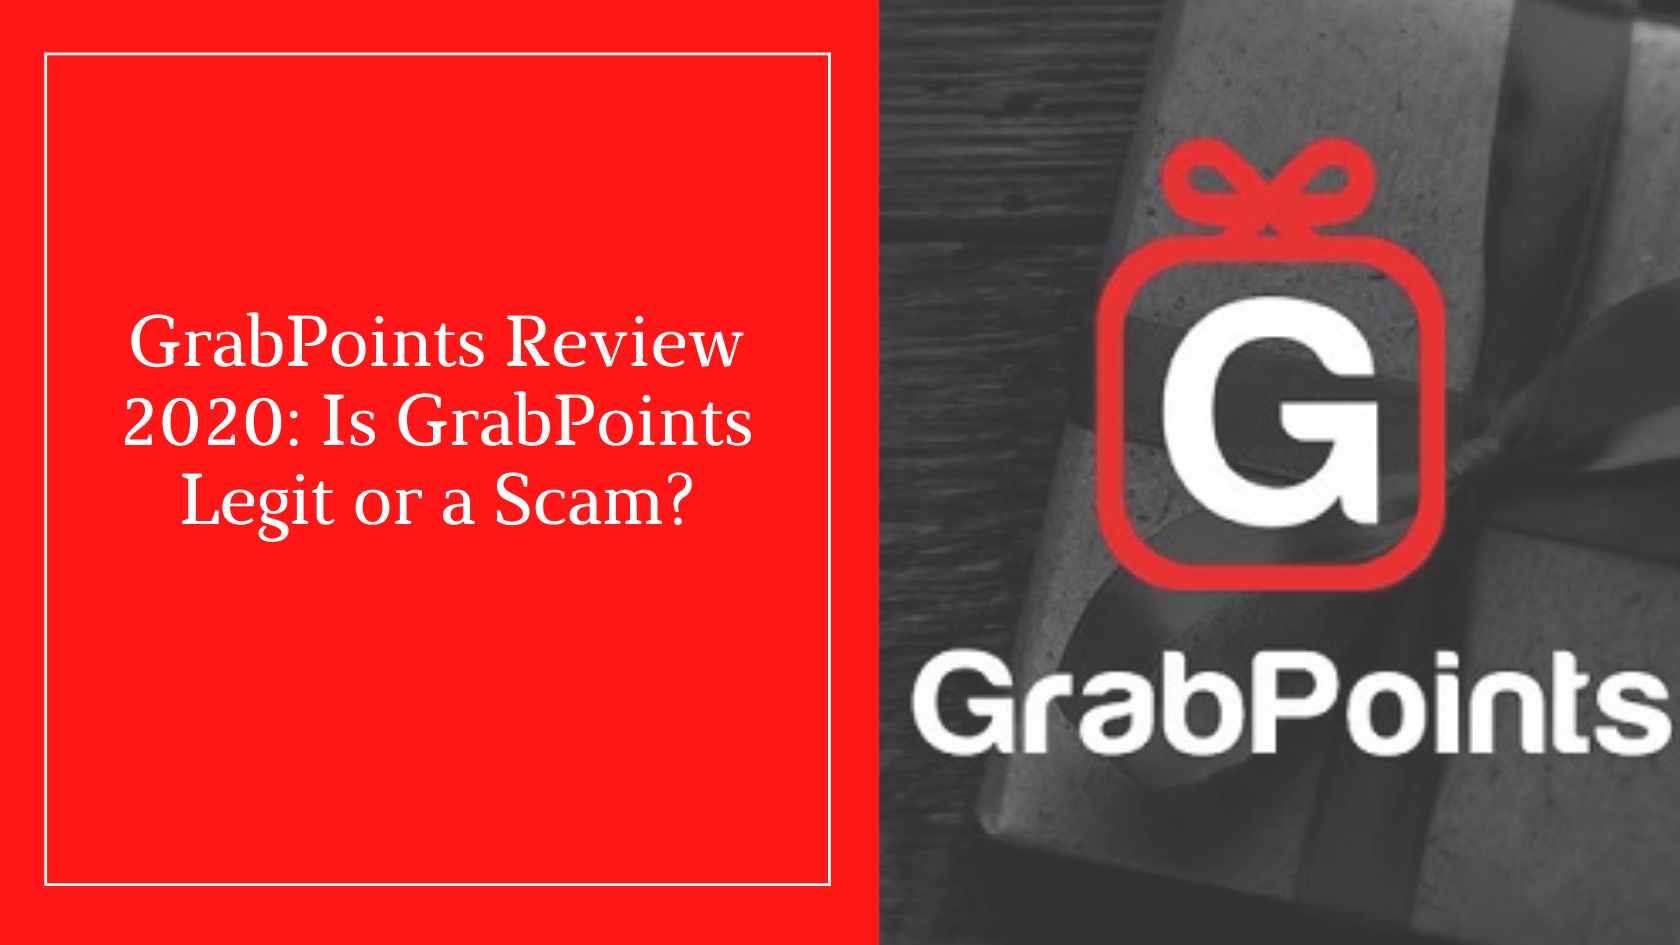 GrabPoints Review 2020_ Is GrabPoints Legit or a Scam